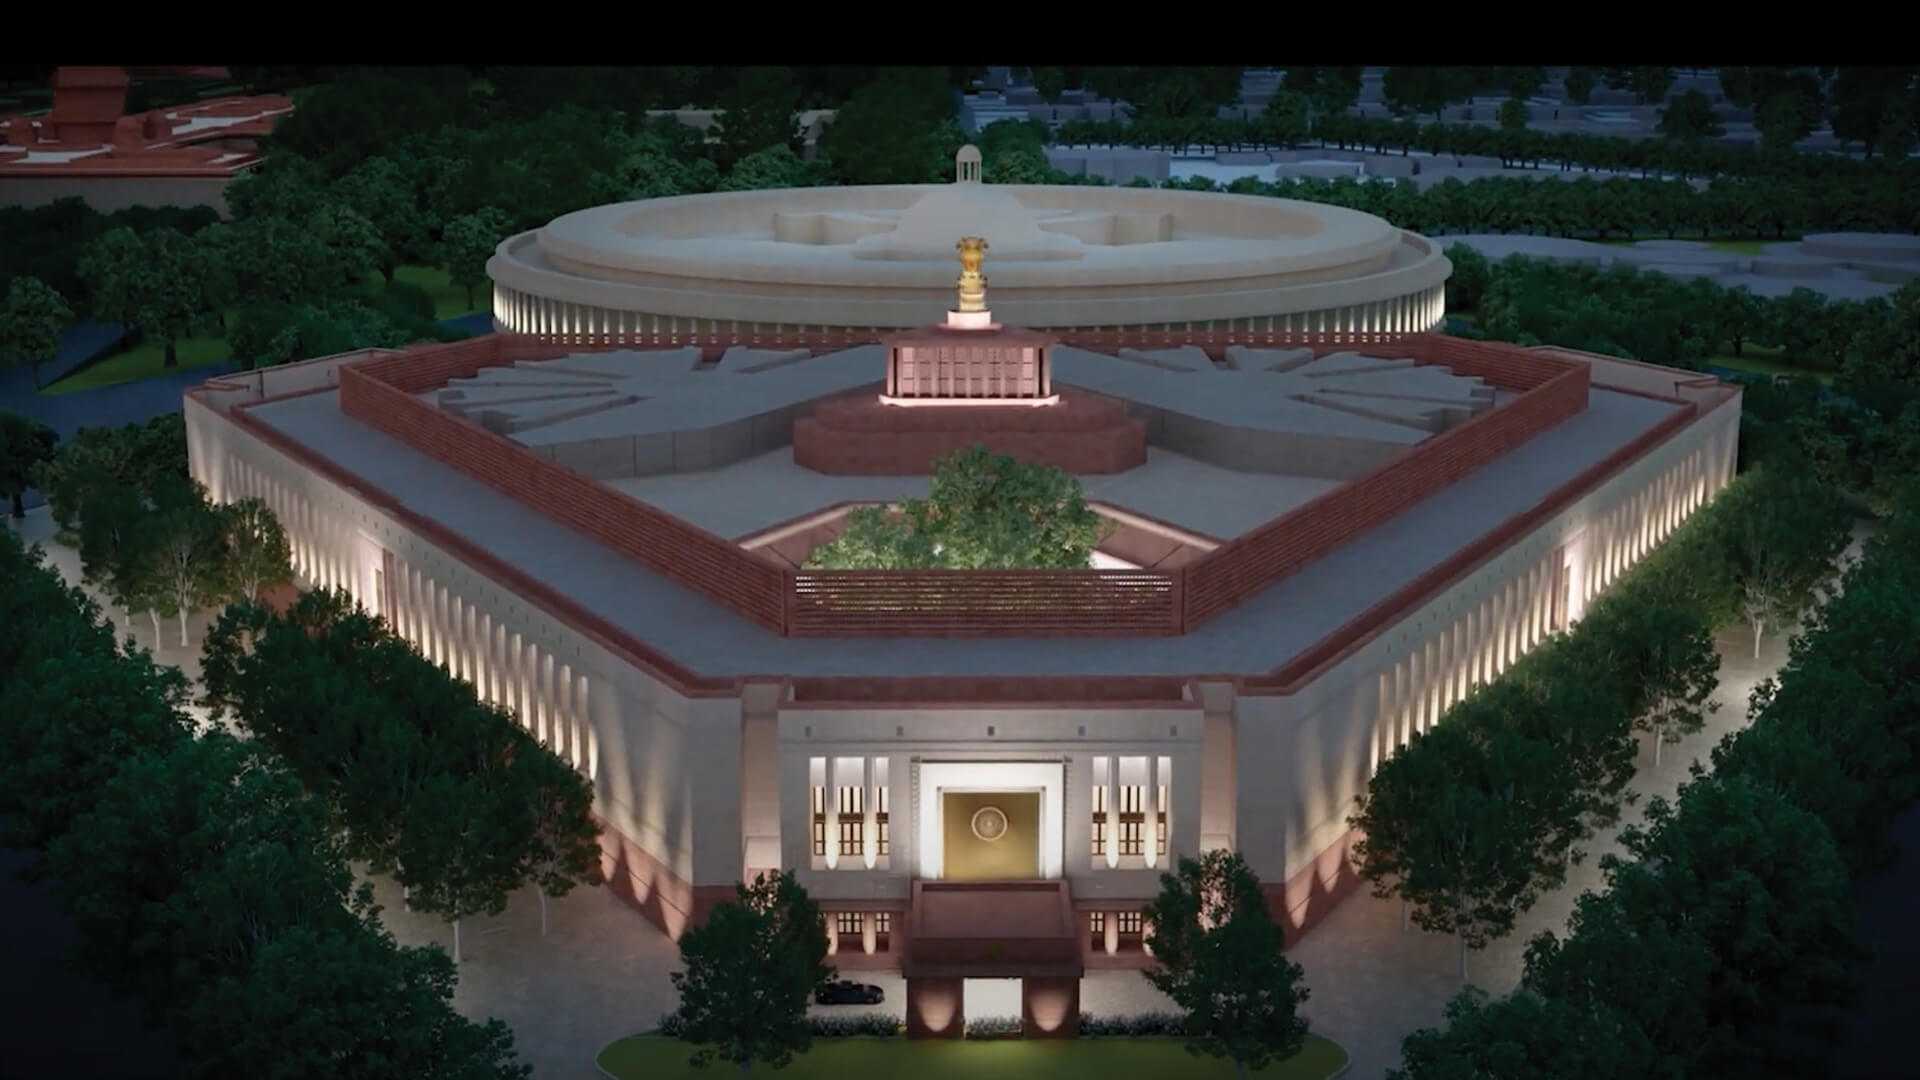 India's new Parliament building as part of the Central Vista redevelopment plan as presented during the ground breaking ceremony in New Delhi | STIRworld